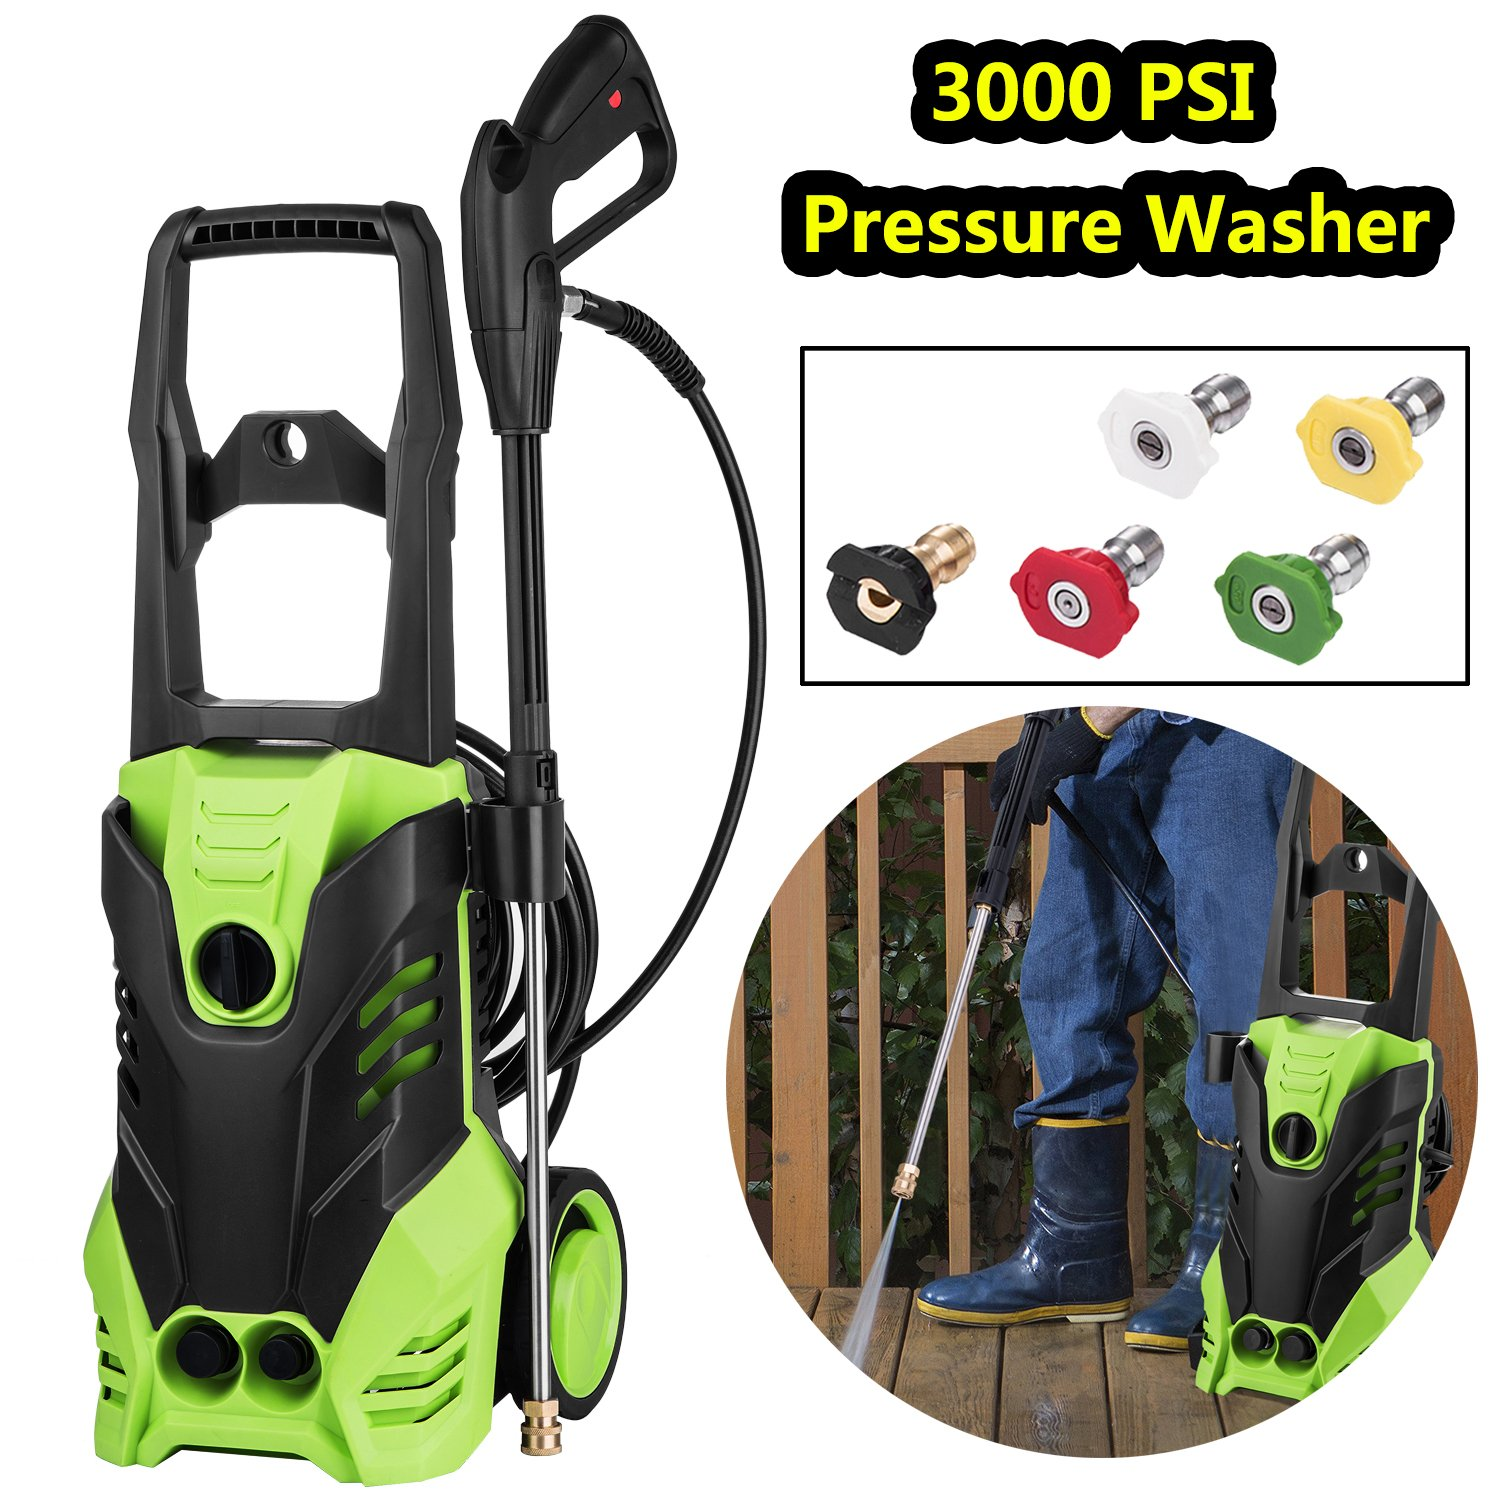 3000 PSI Electric High Pressure Washer Machine 1.8 GPM 1800W Sprayer Cleaner Machine with 5 Quick-Connect Spray Nozzles [US STOCK] (3000PSI) by ncient